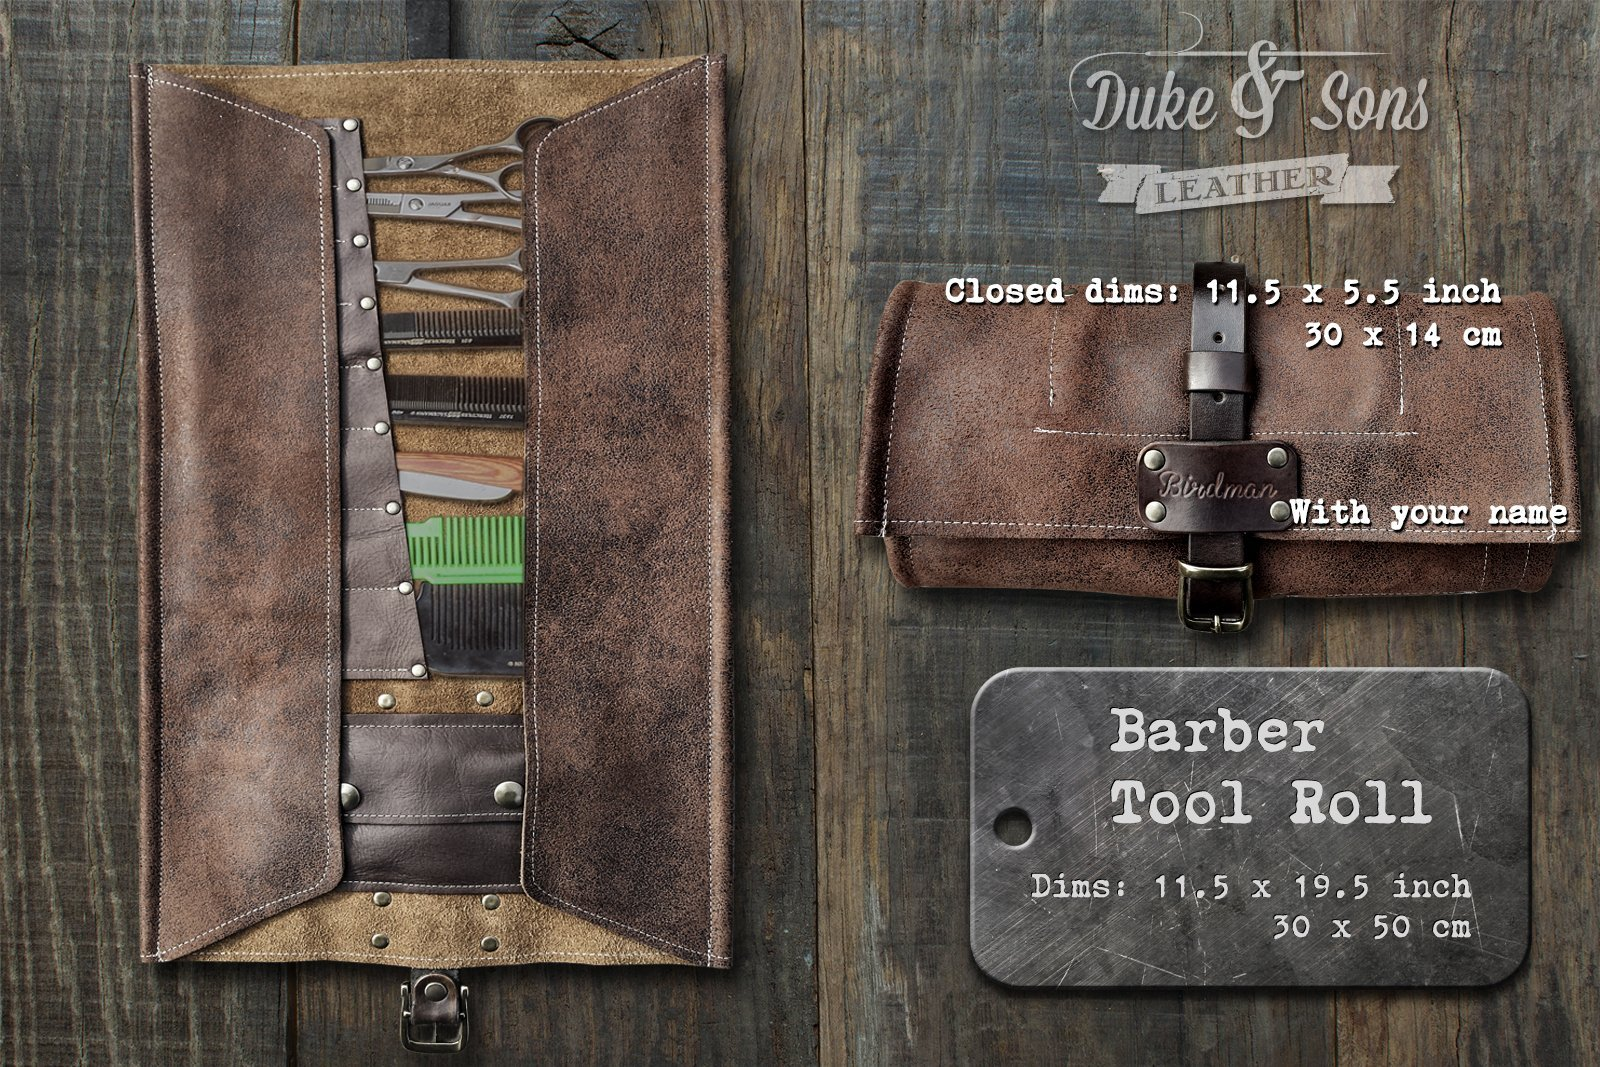 Barber Tool Roll, (leather, handmade and personalized) with pockets for shears,combs and all barber tools